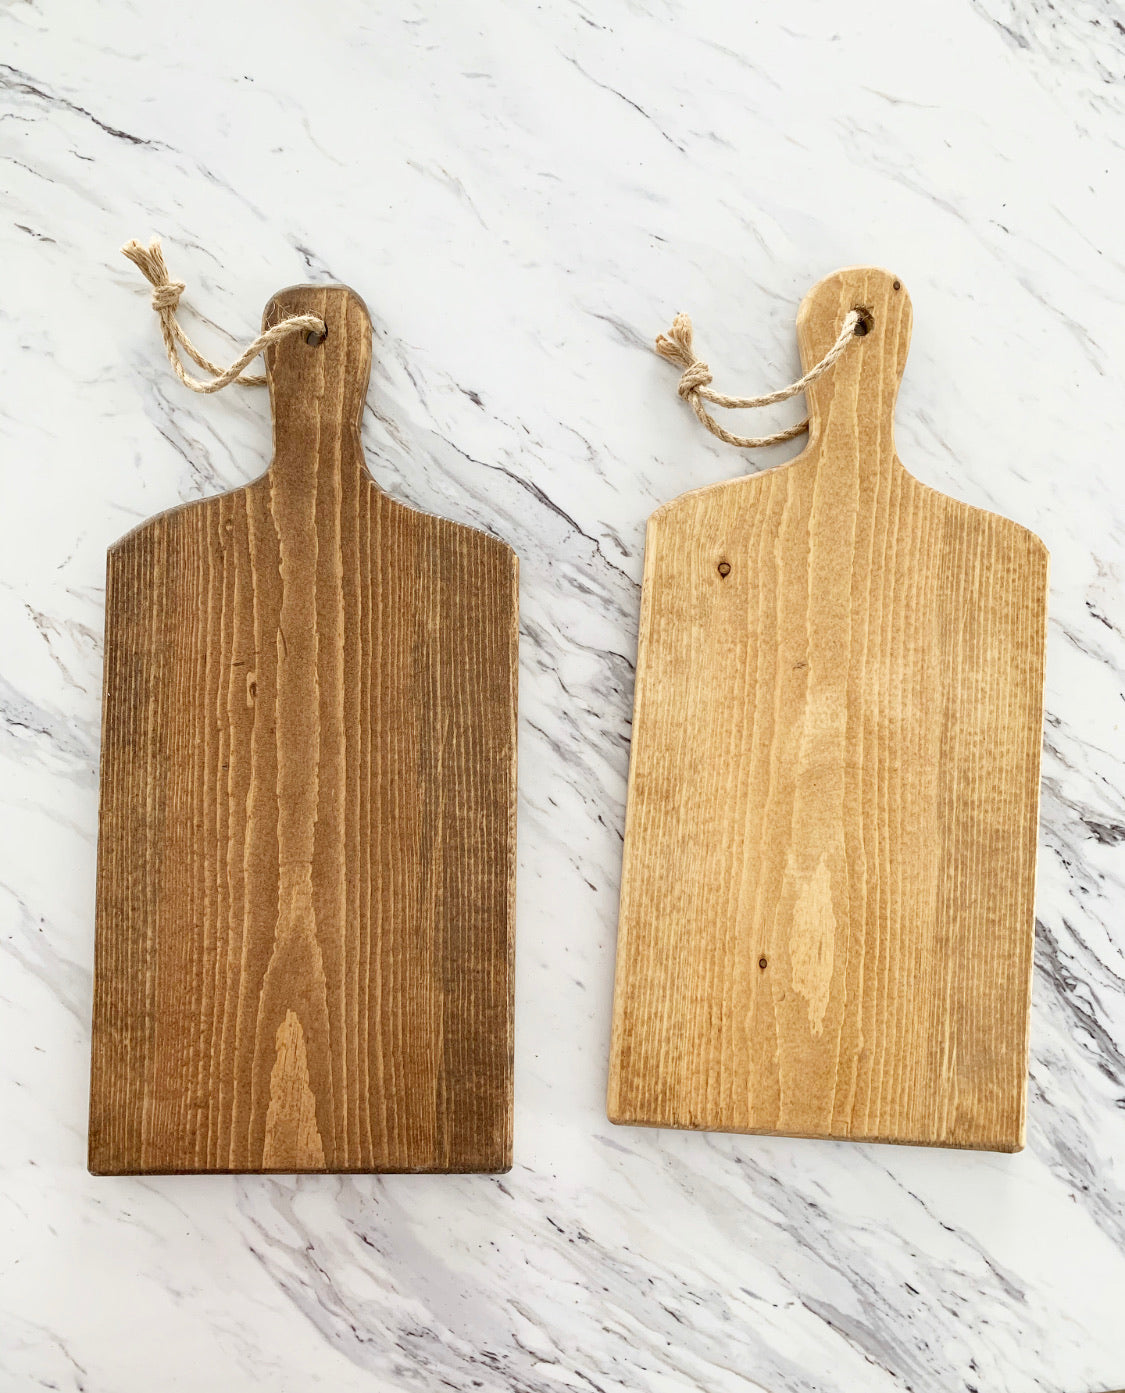 XLarge Cutting Board